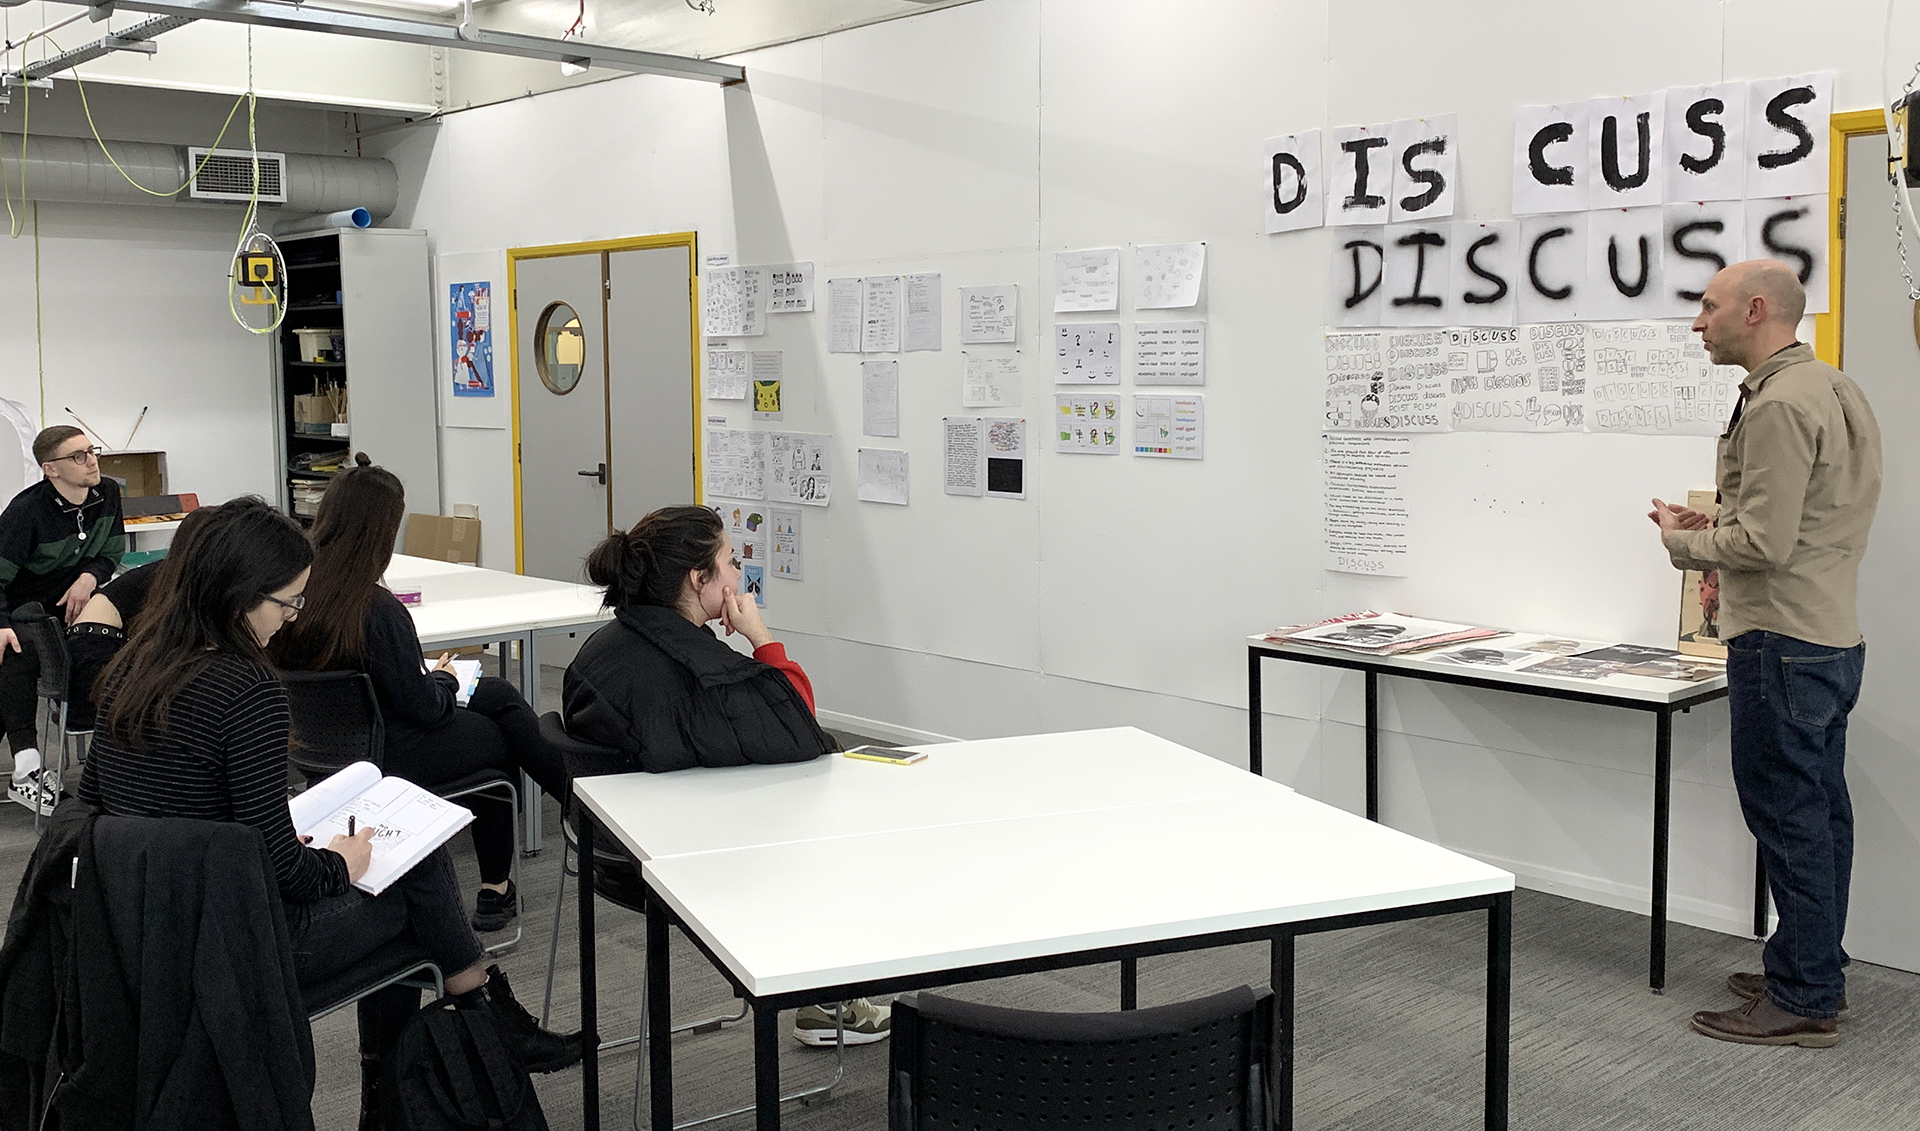 A photograph of students sitting at tables involved in a discussion about work pinned to the wall